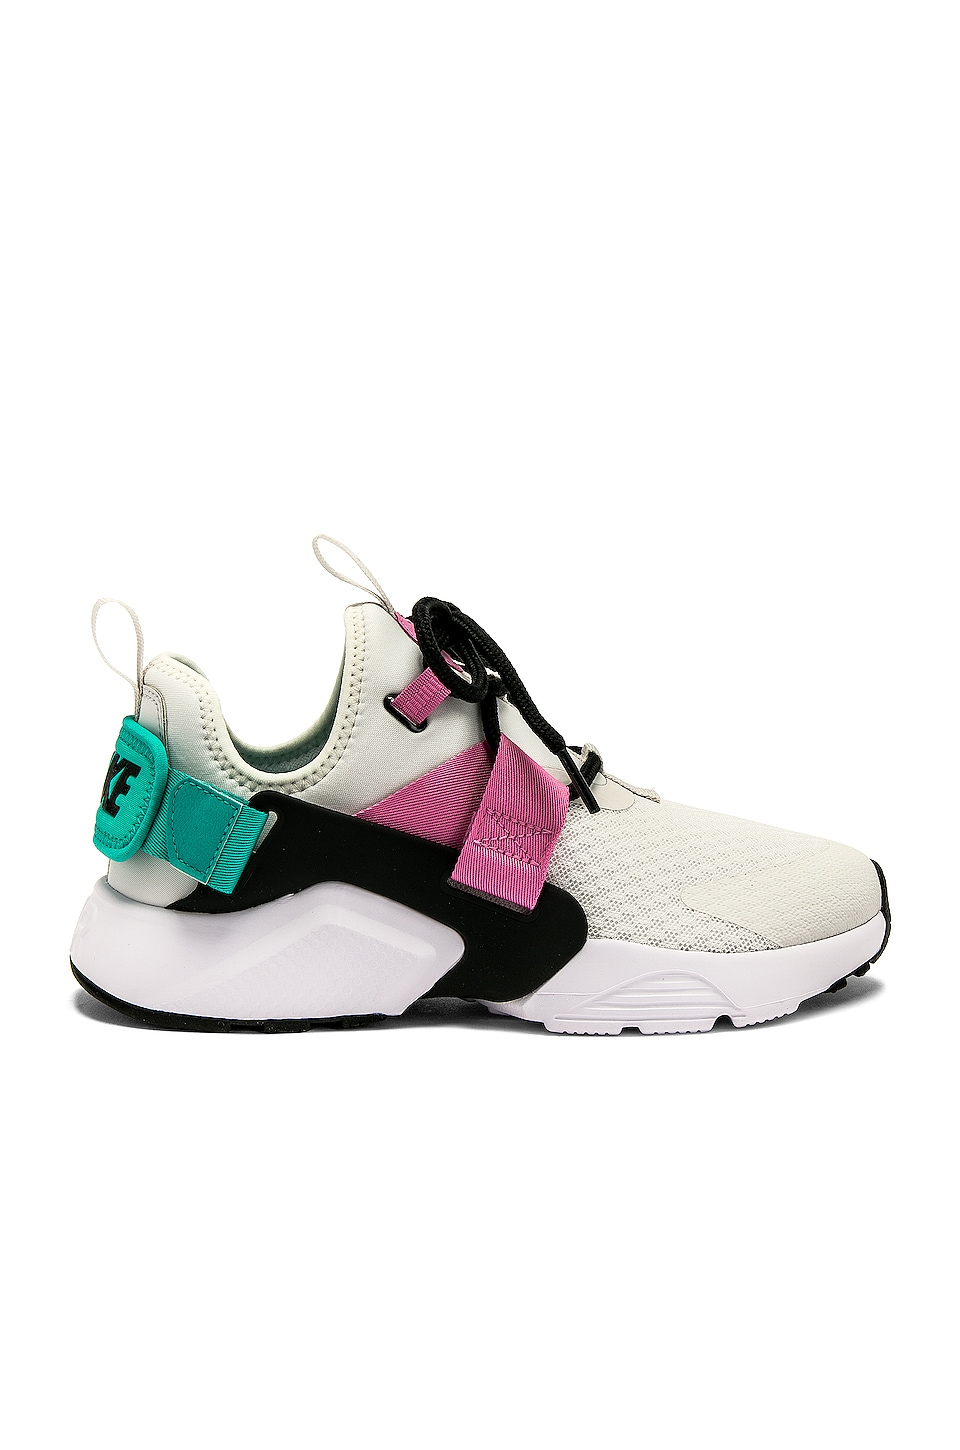 Nike Women's Air Huarache City Low Sneaker in Jade, Pink & Black